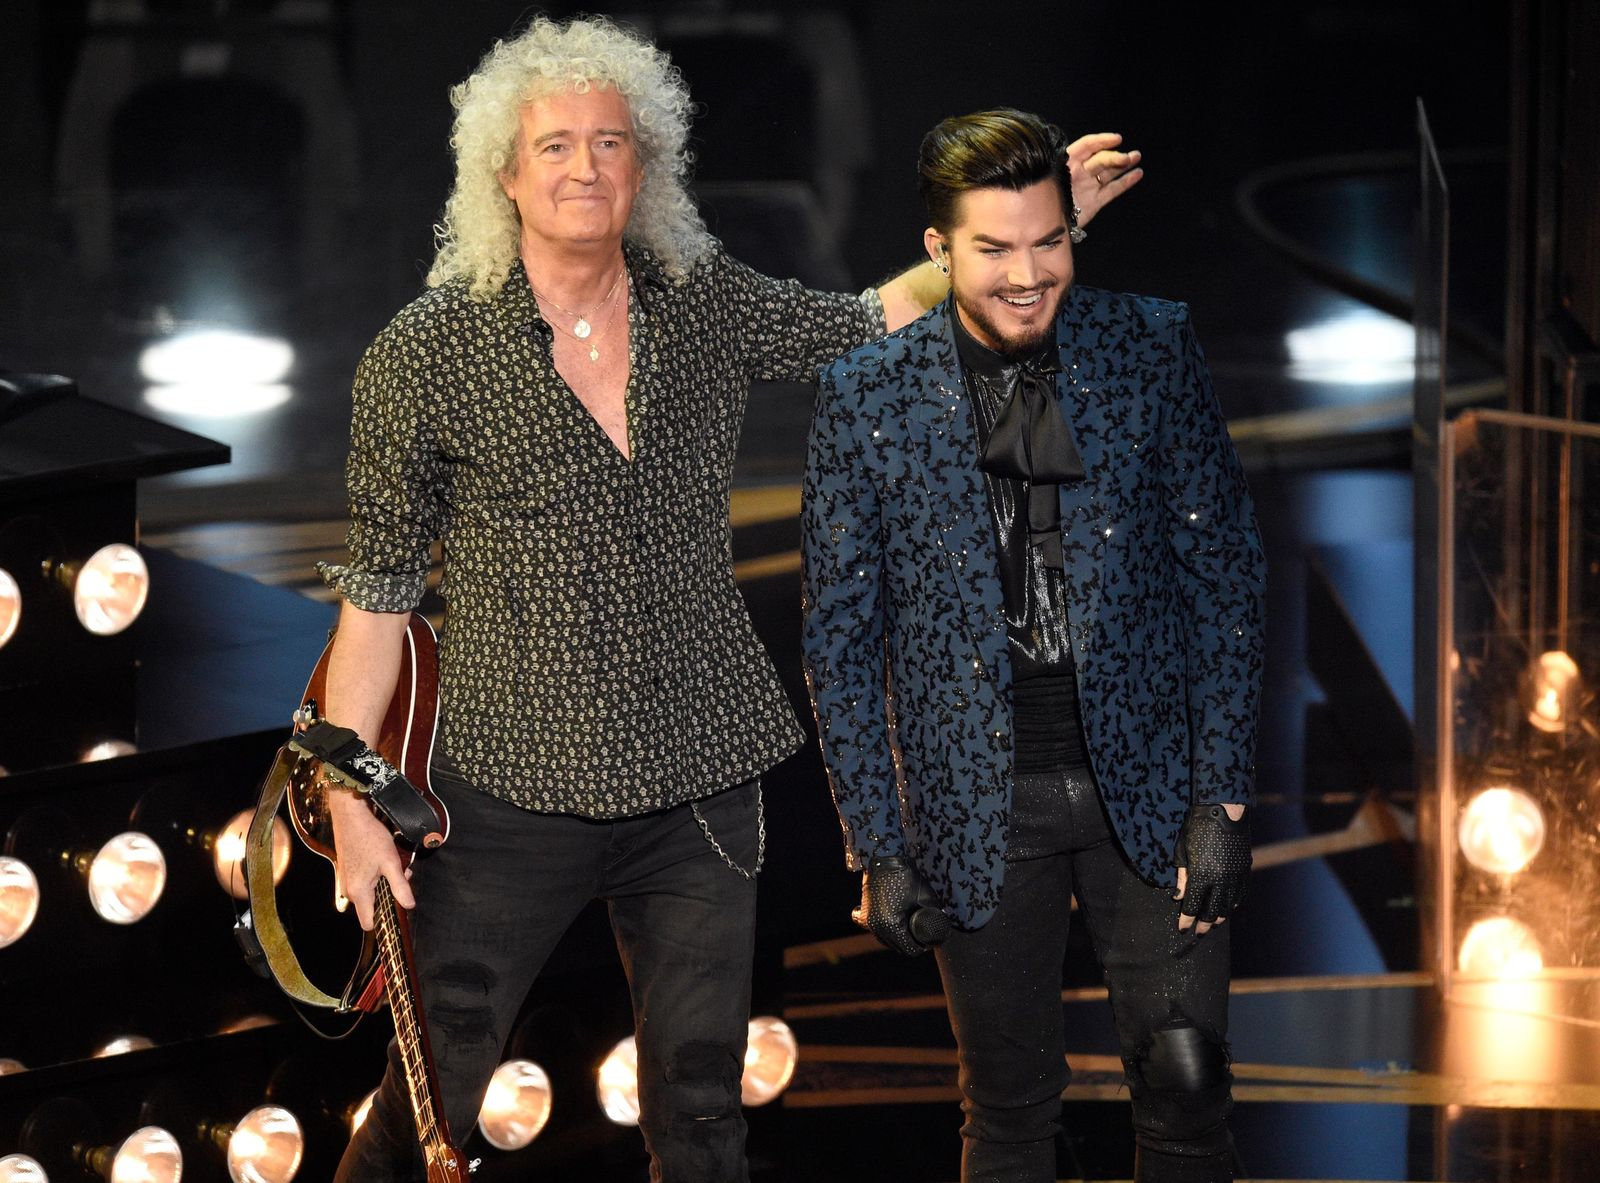 Adam Lambert, right, and Brian May of Queen acknowledge the audience after a performance at the Oscars on Sunday, Feb. 24, 2019, at the Dolby Theatre in Los Angeles. (Photo by Chris Pizzello/Invision/AP)